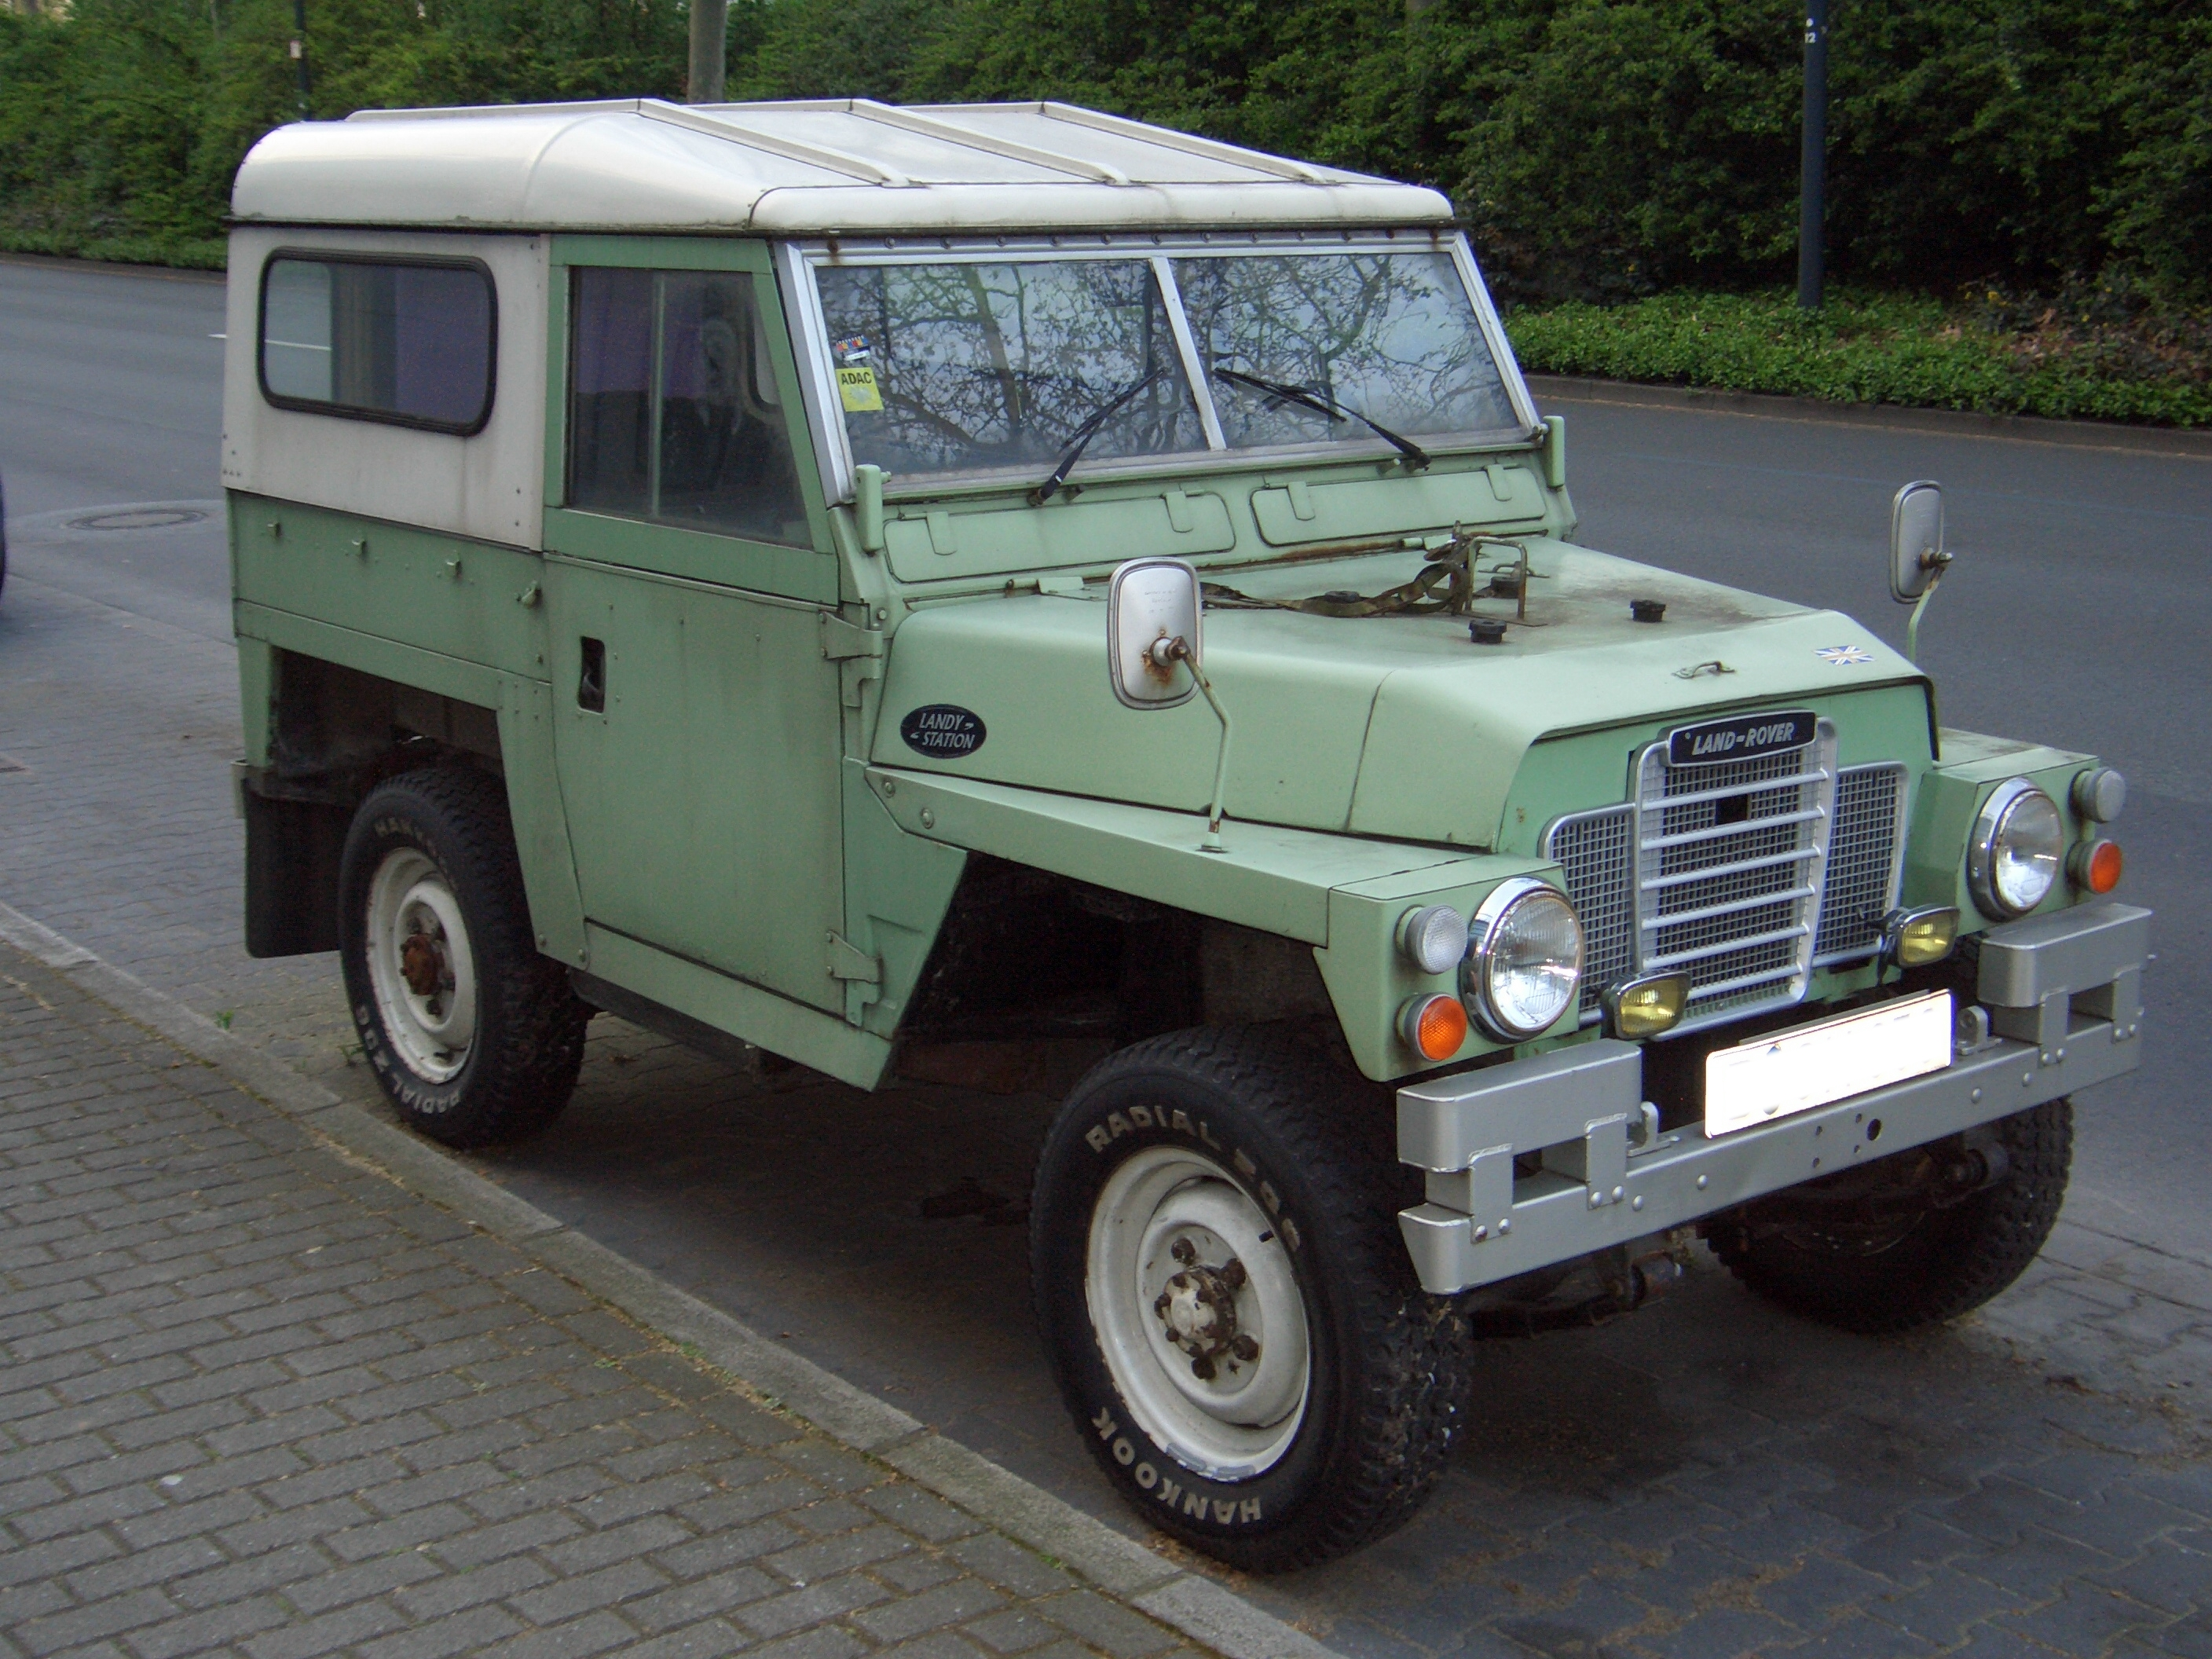 Build Your Own Land Rover >> File:Land Rover Series III Lightweight 1972-1984 frontright 2008-04-20 U.jpg - Wikimedia Commons